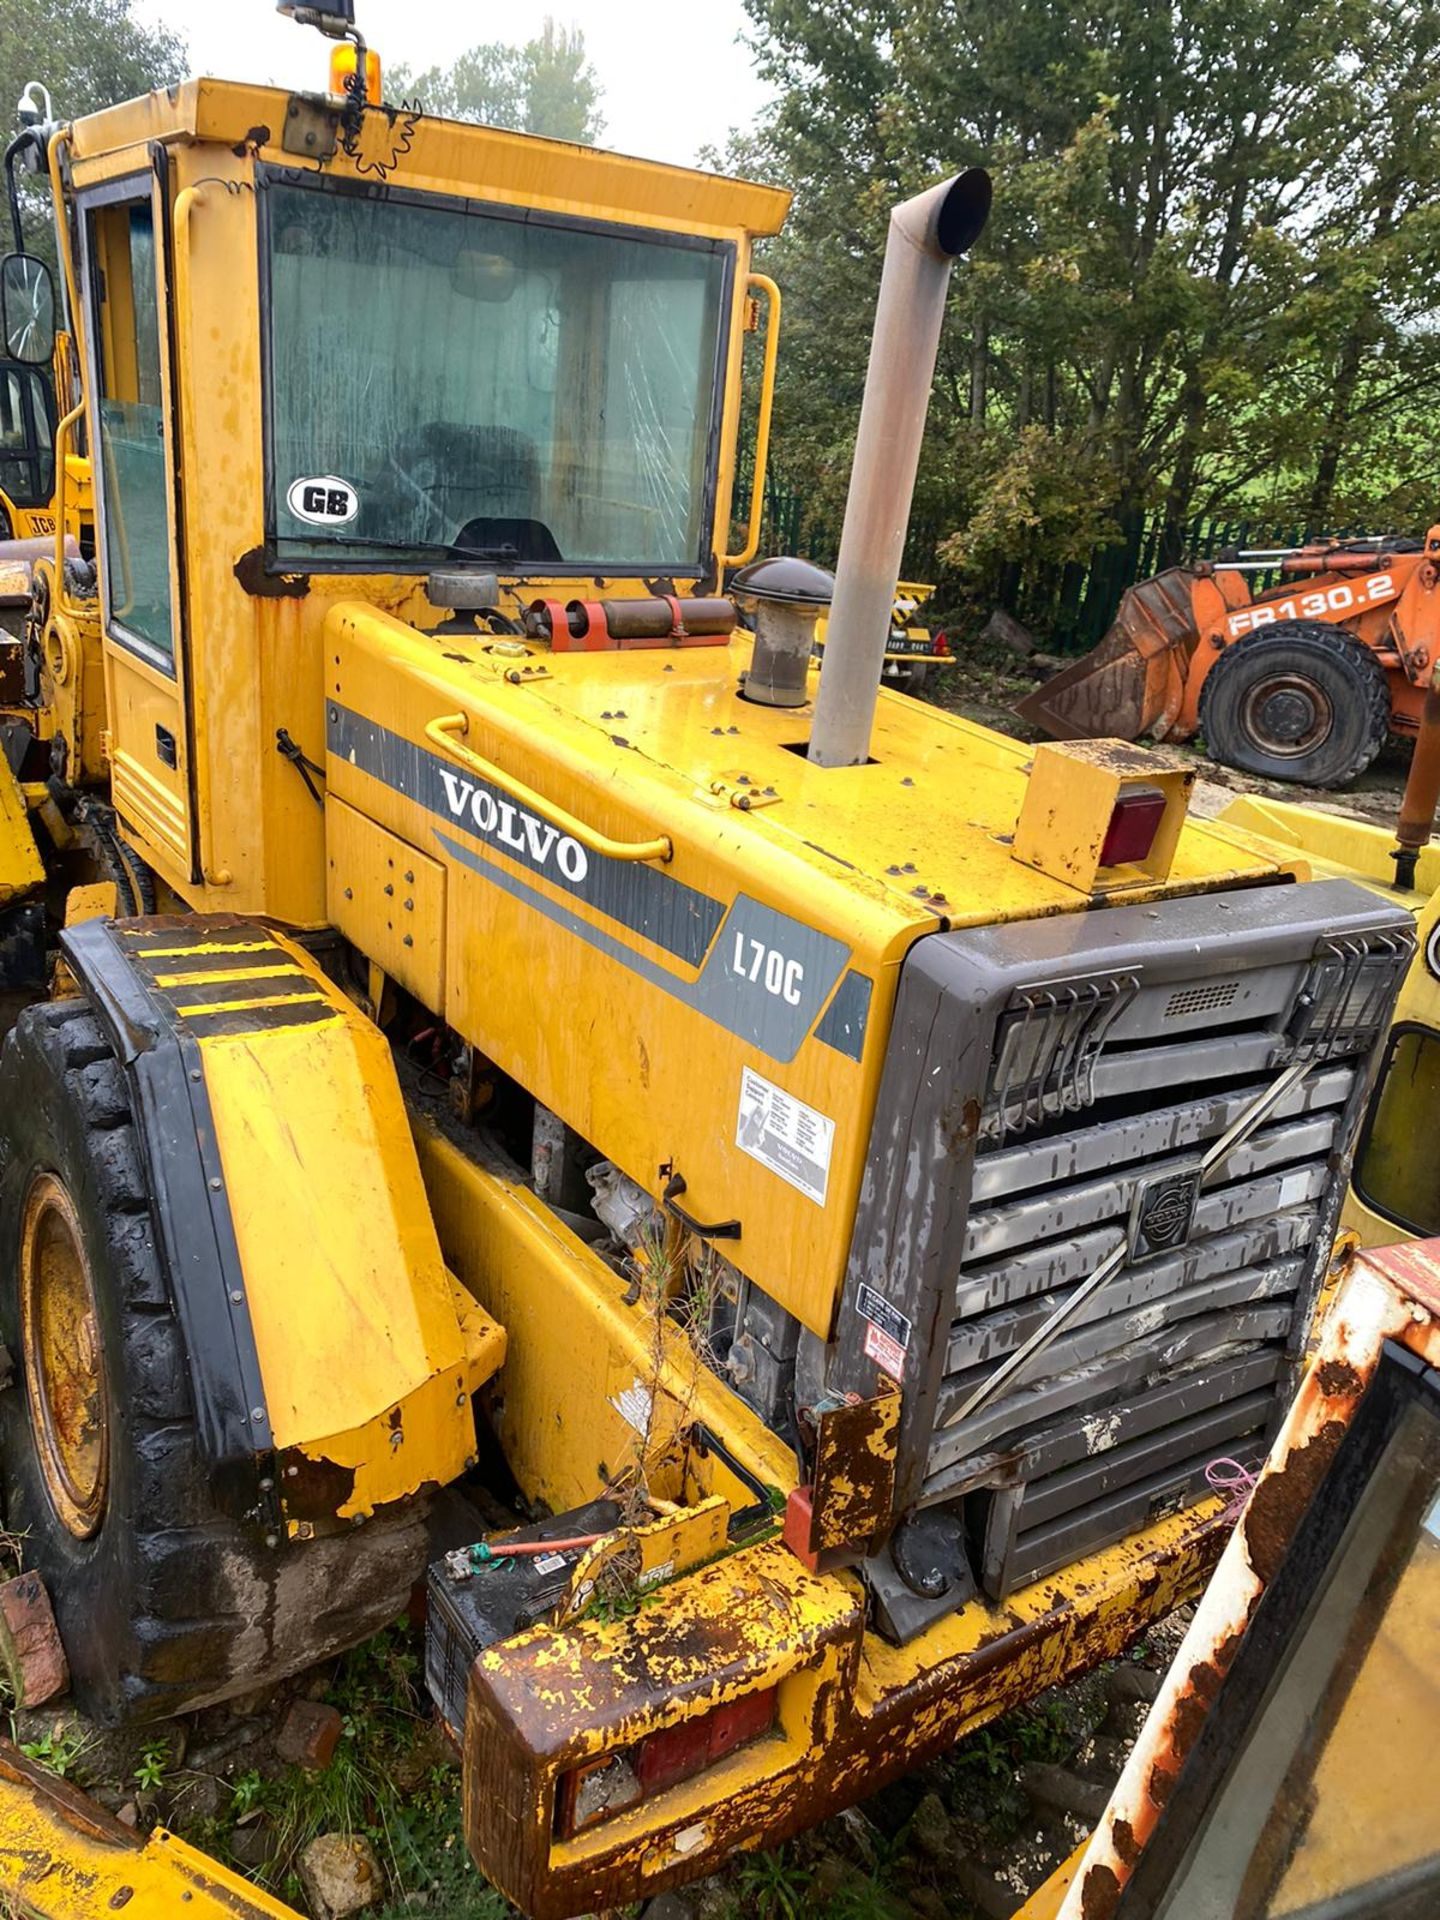 VOLVO L70C LOADING SHOVEL, RUNS AND LIFTS, BUT NO DASH LIGHTS SO FORWARD & REVERSE DONT WORK - Image 2 of 9